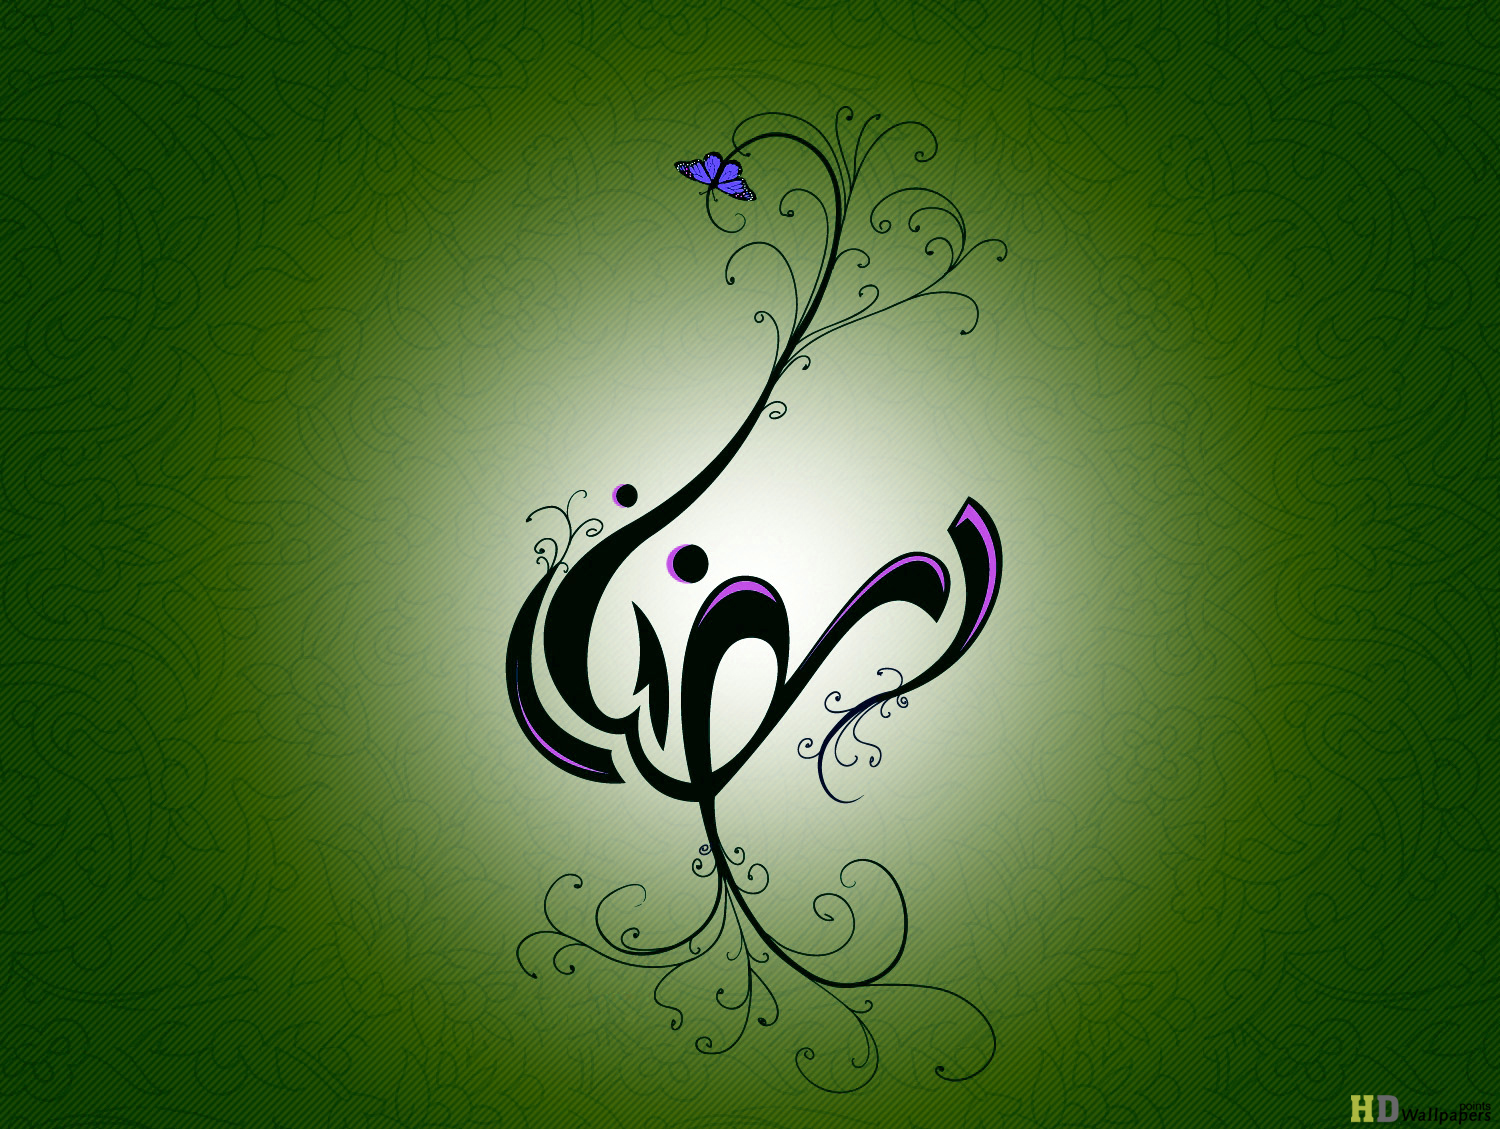 Islamic Wallpaper aa Download Free Latest Ramadan Wallpapers 1500x1129